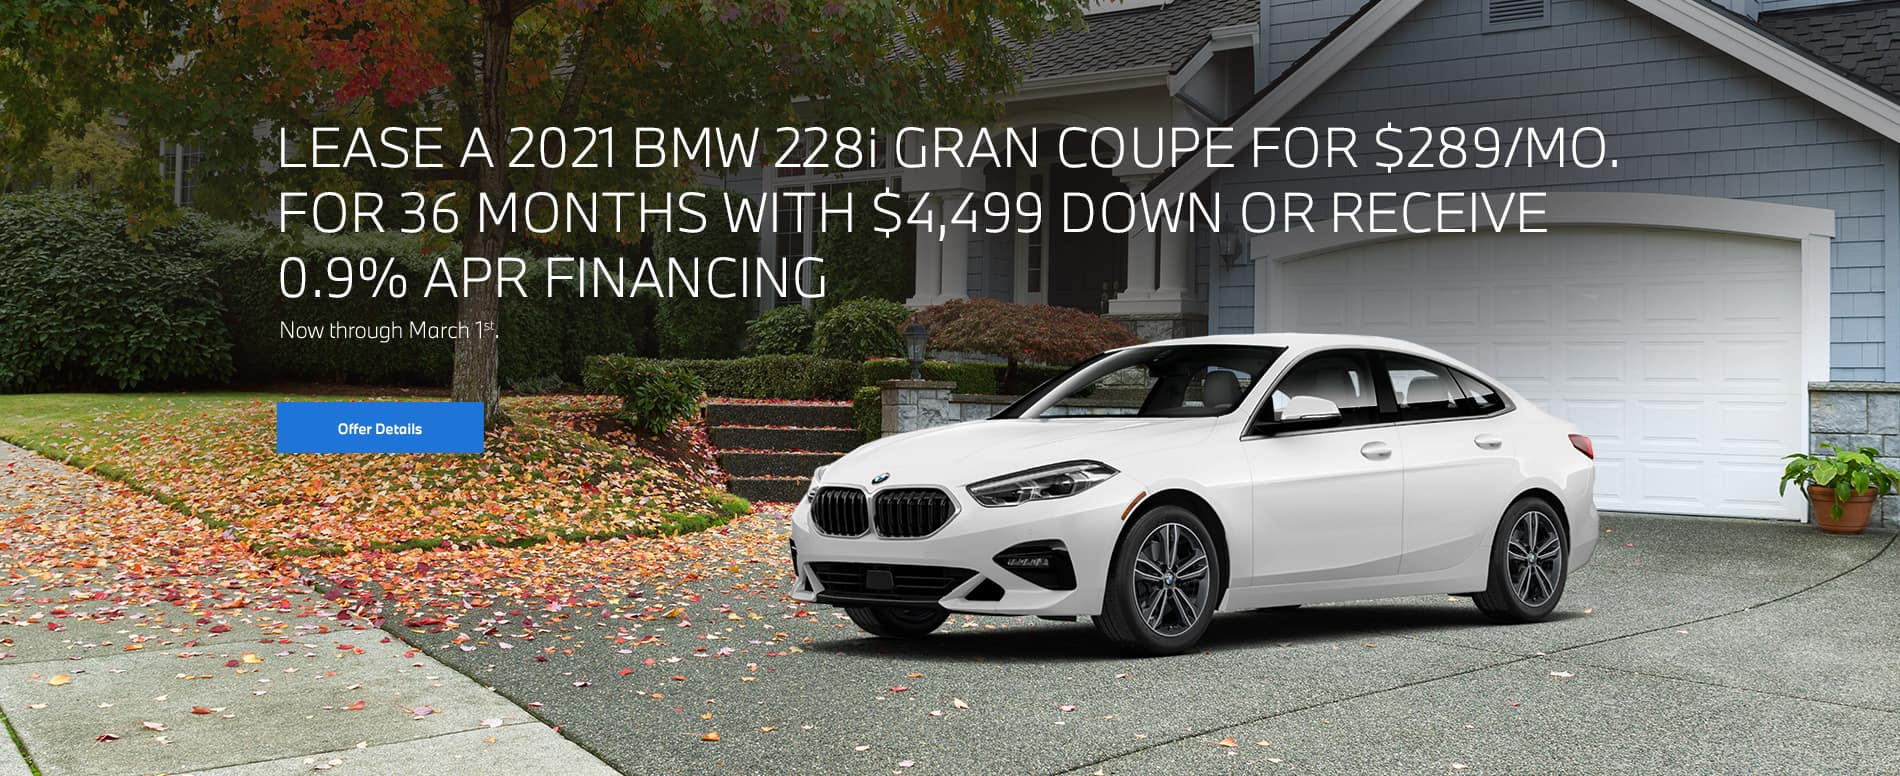 White 2 Gran Coupe parked in house driveway